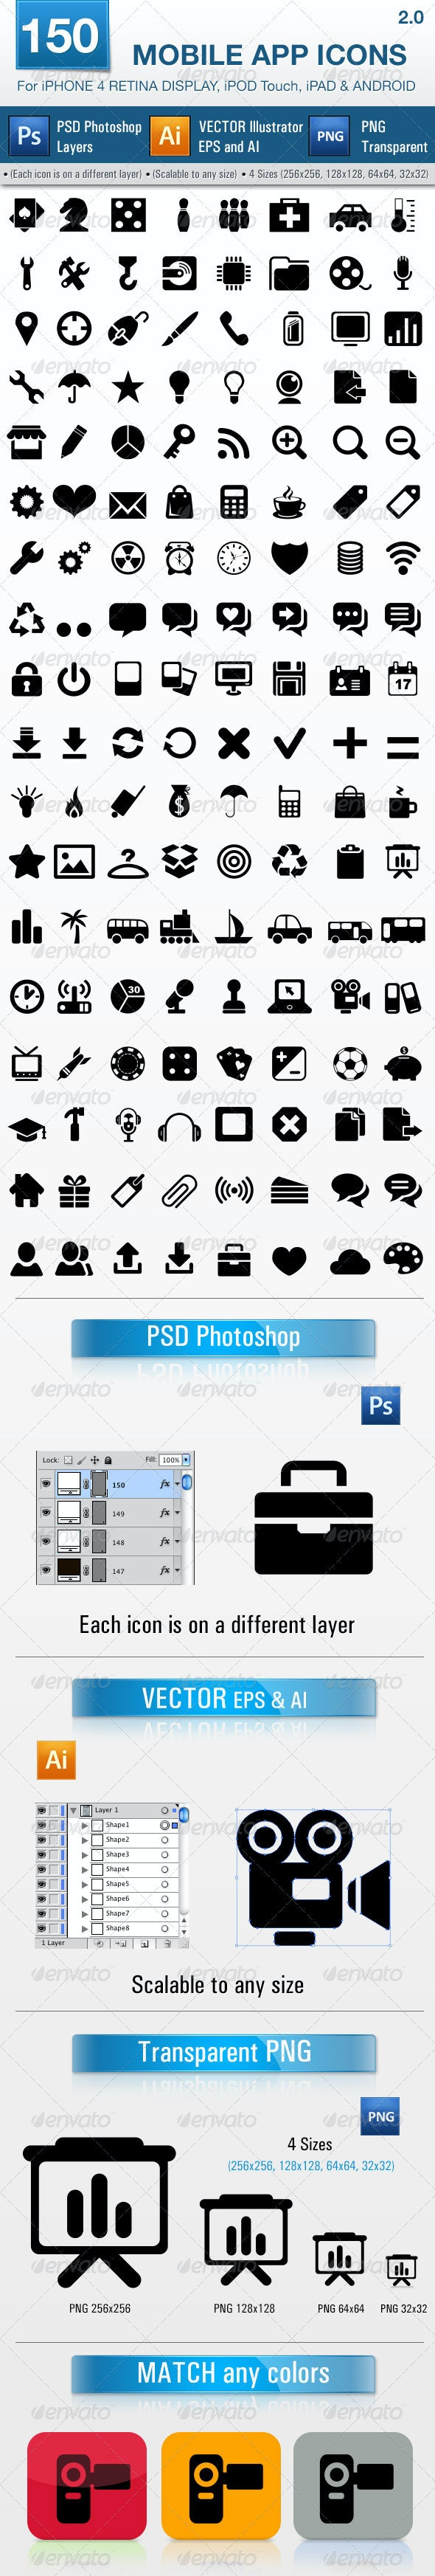 150 Mobile App Icons Pack 2 - Software Icons